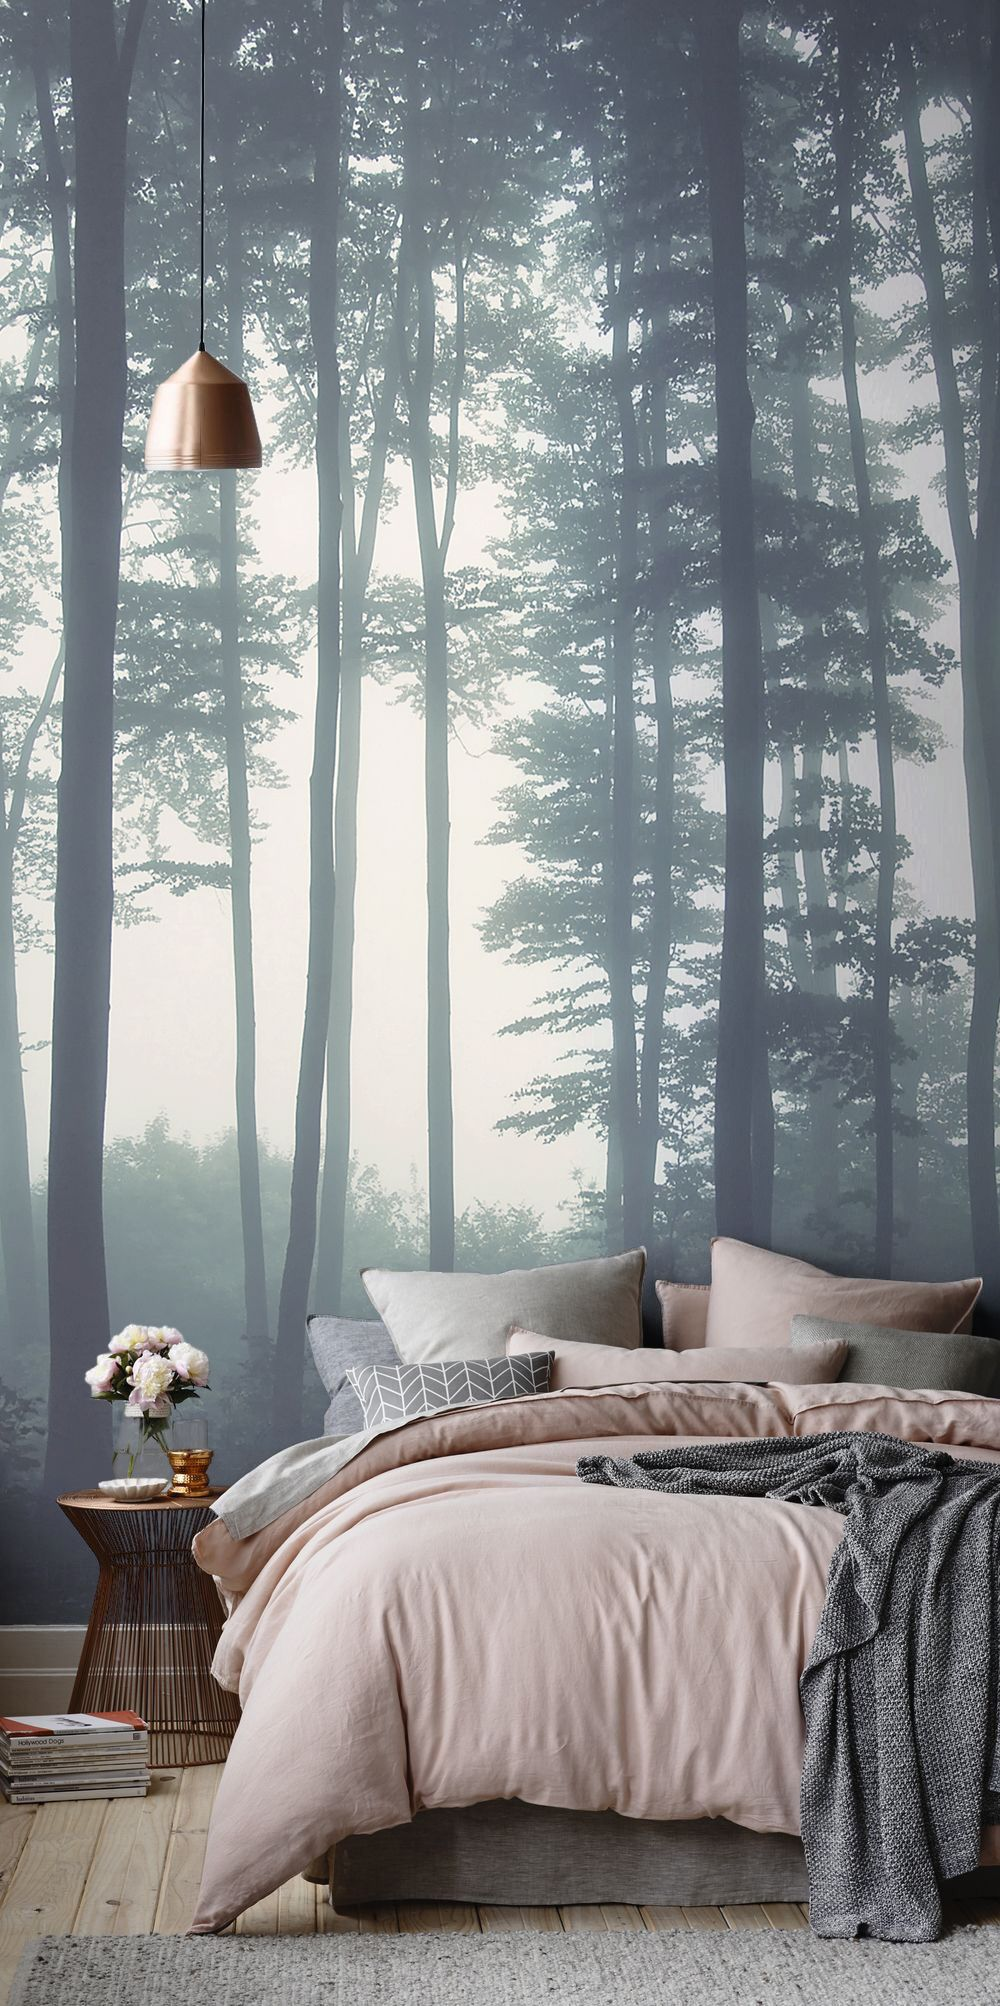 Create A Dreamy Bedroom Interior With Our Sea Of Trees Wallpaper Mural Mesmerising Steely Blue Tones Add An Air Mystery To Your Interiors